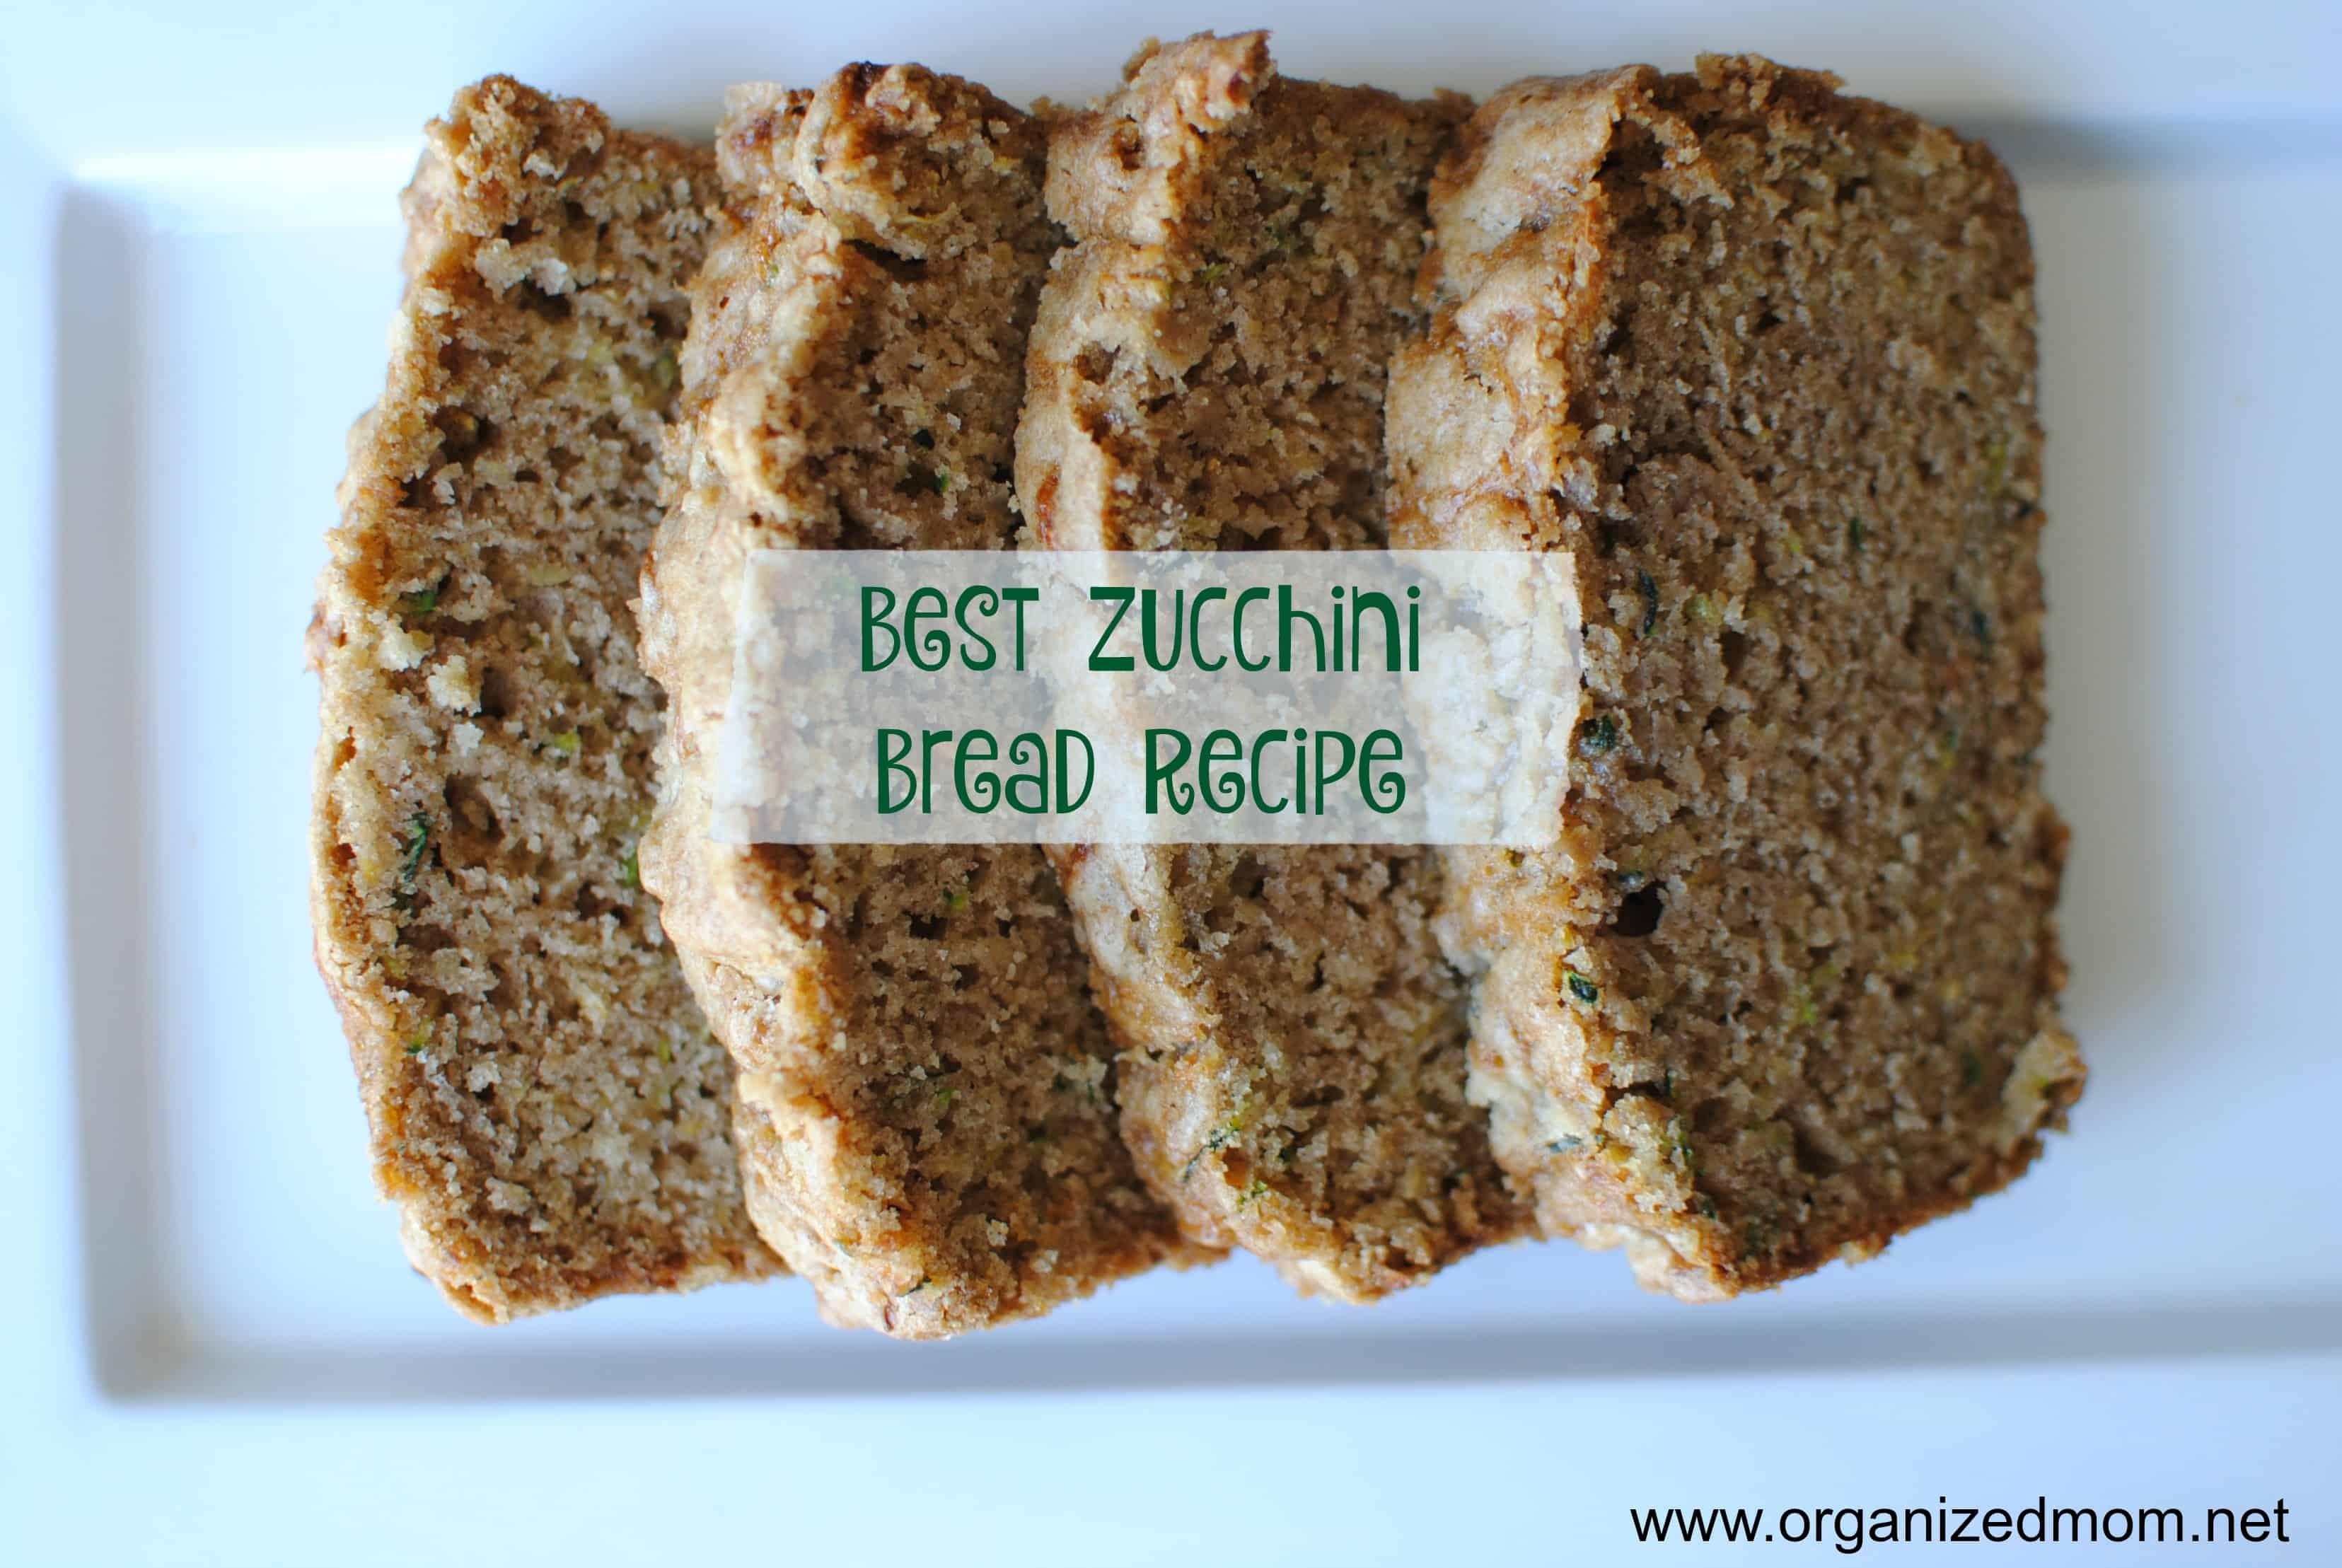 Time To Bake Best Zucchini Bread Recipe The Organized Mom